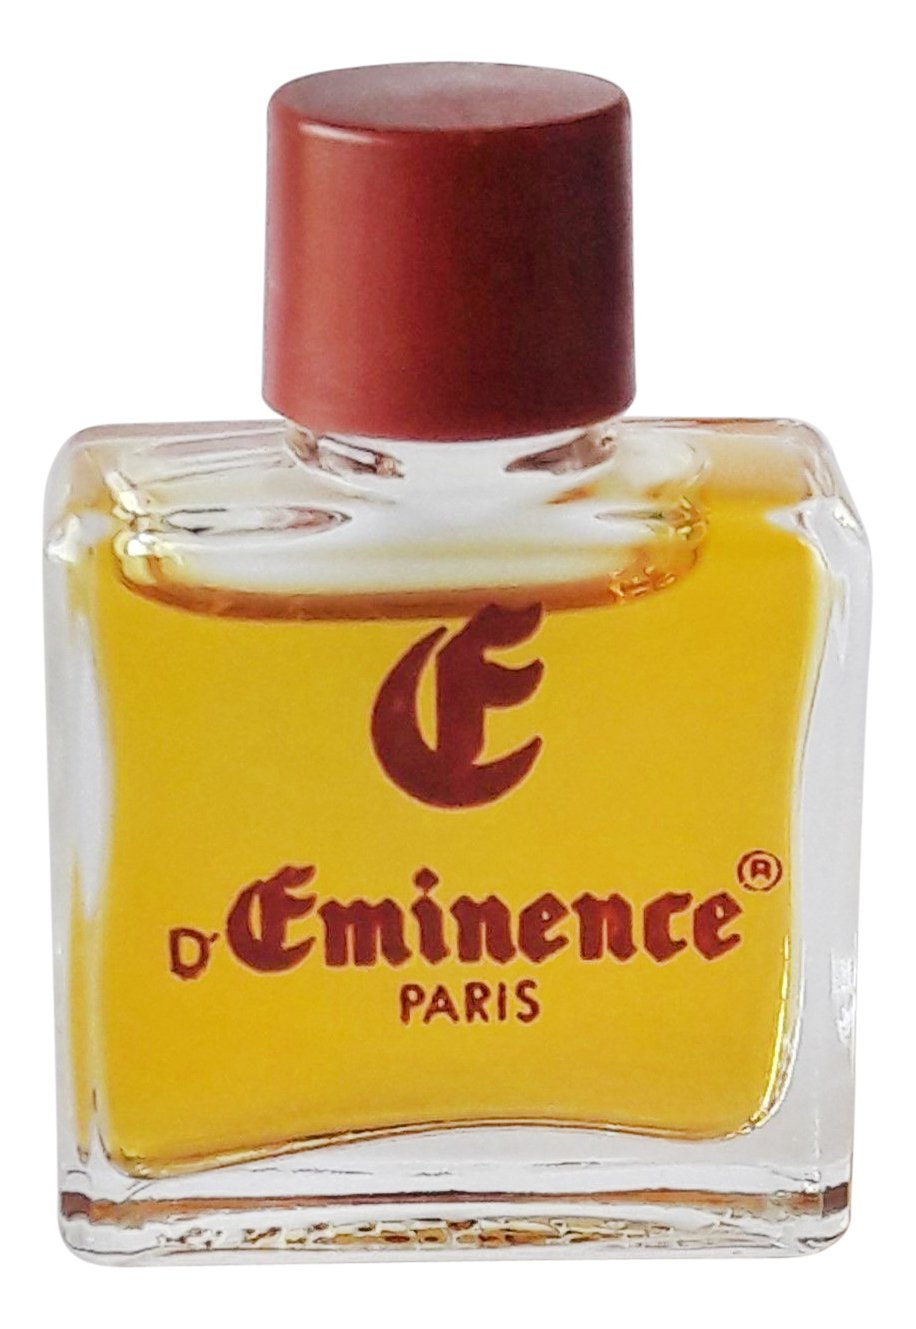 Eminence e d 39 eminence eau de toilette reviews and rating for Arrivee d eau toilette